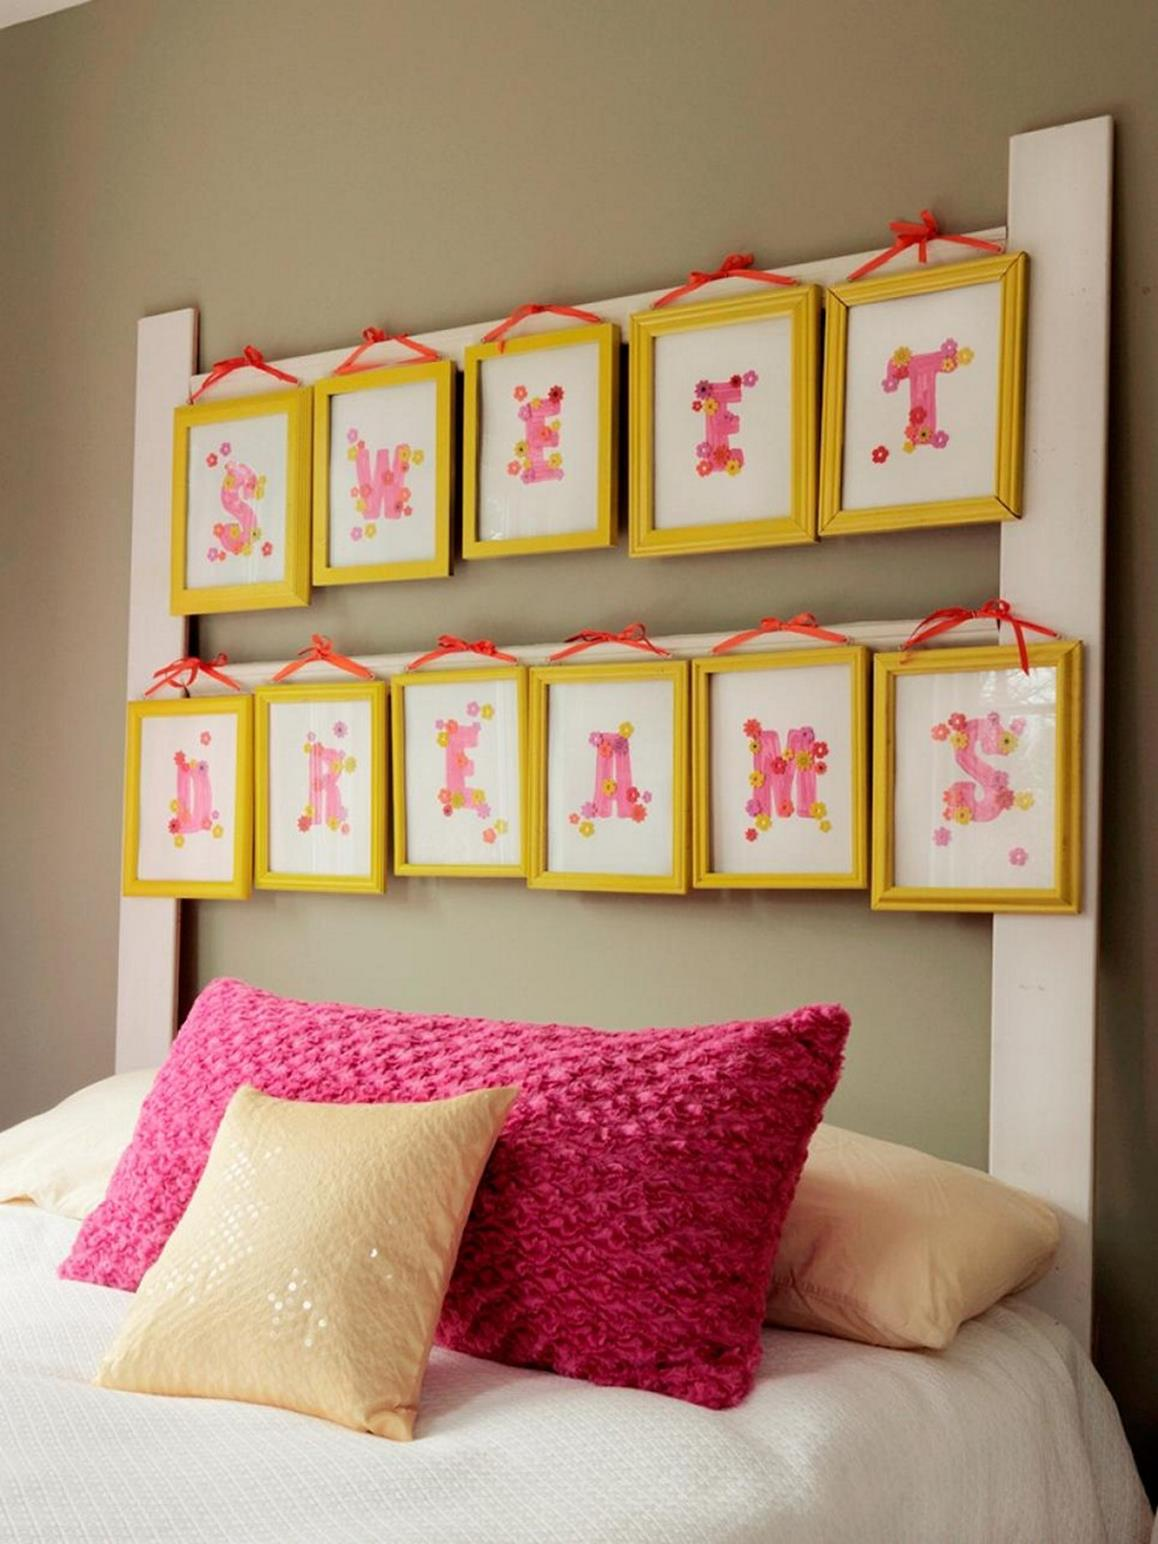 Perfect Bedroom Decorating Idea for Craft 17